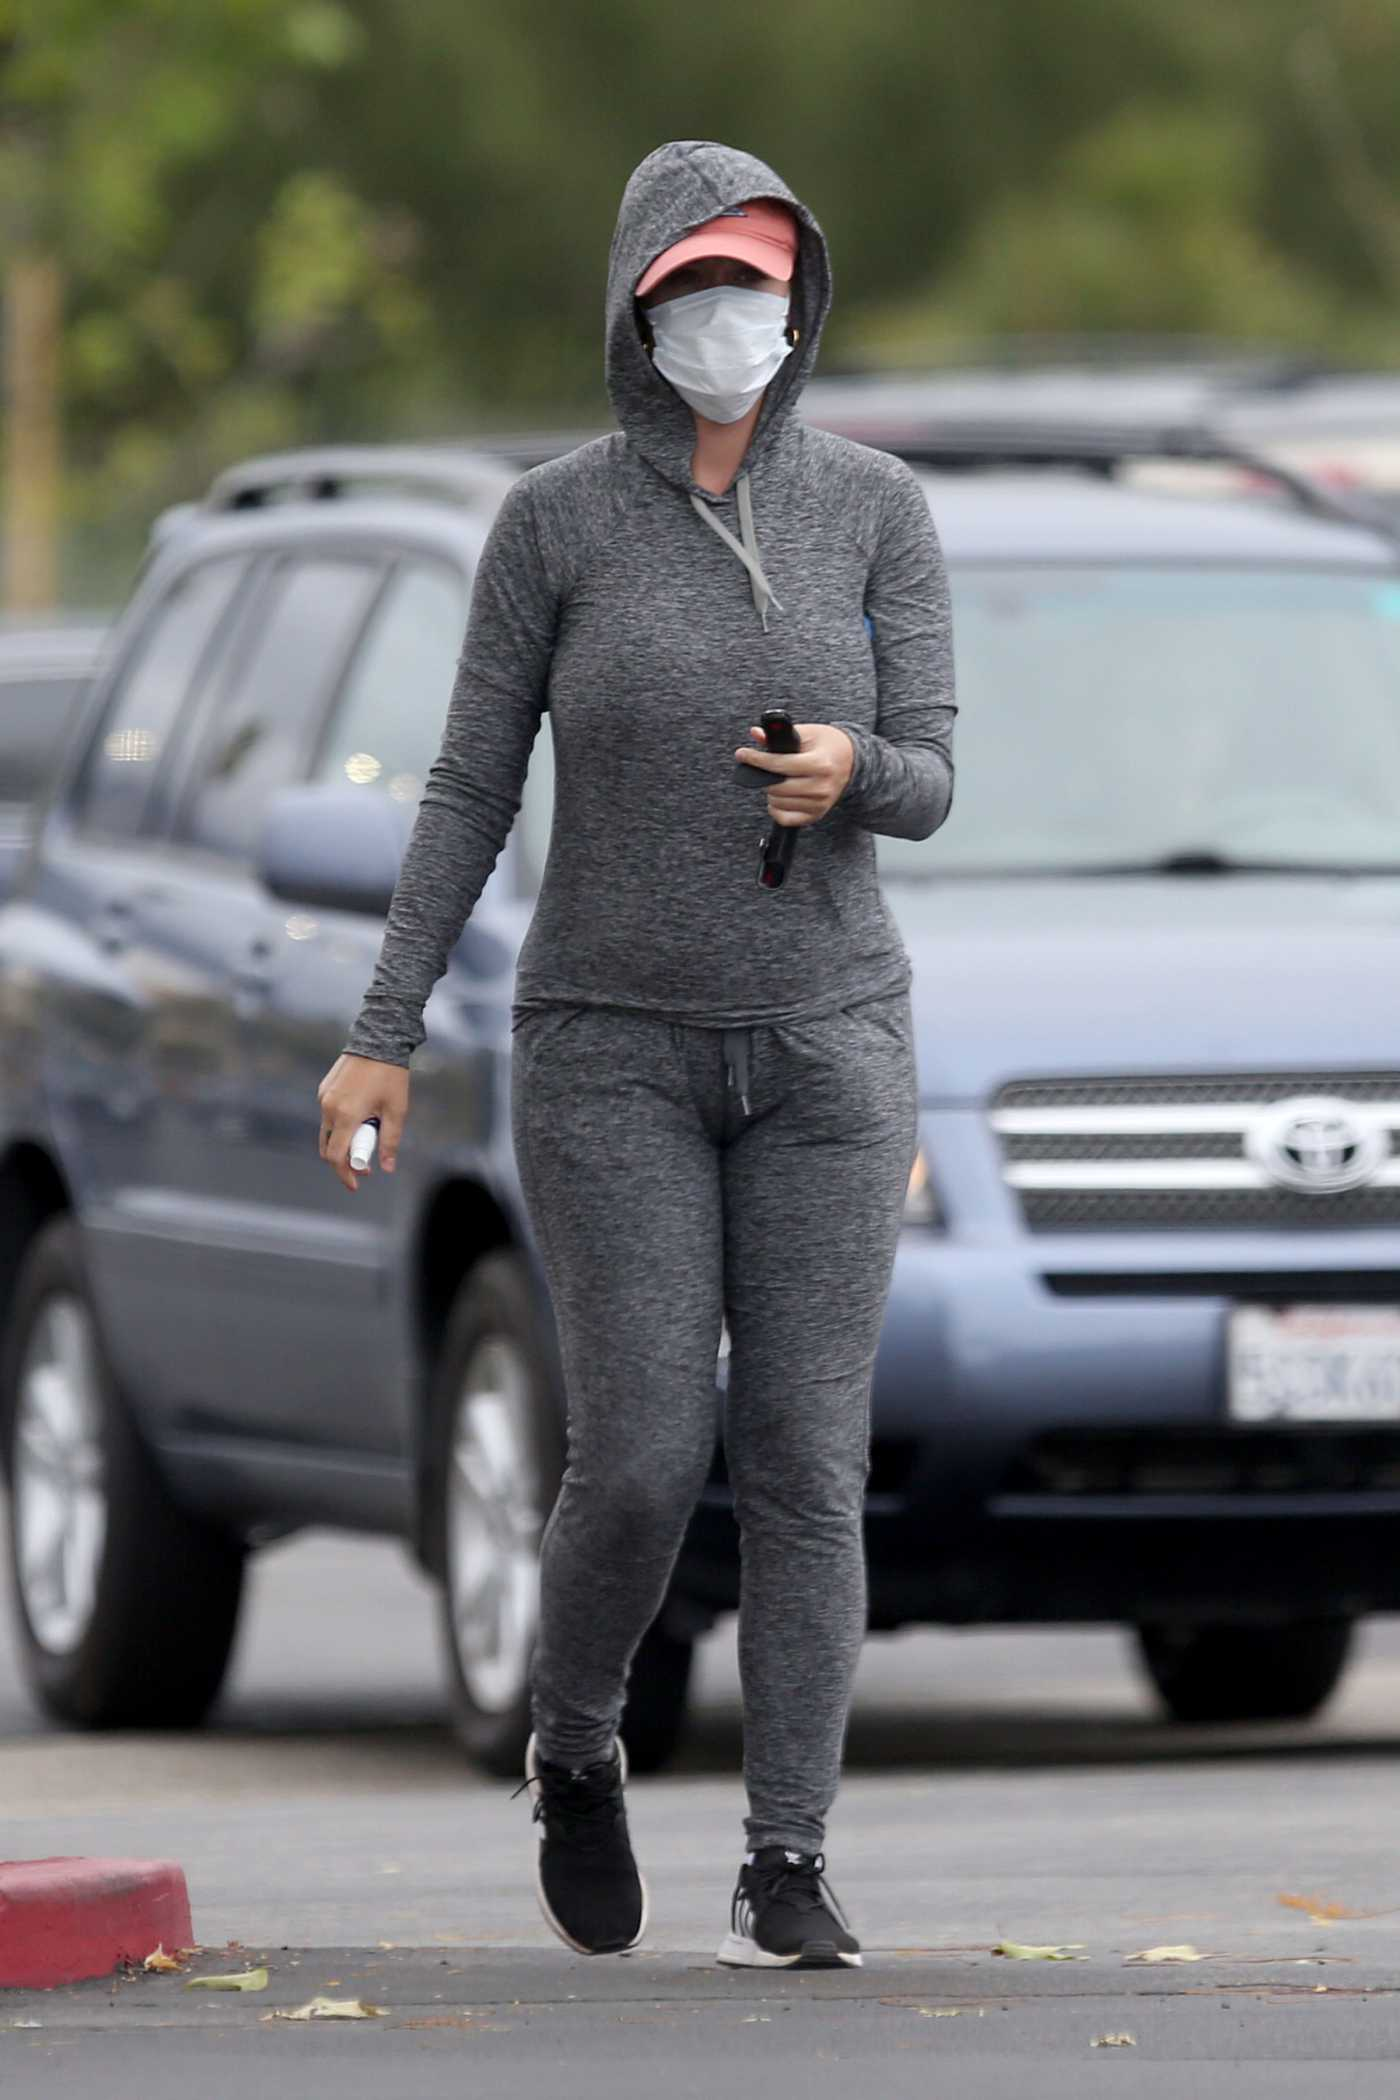 Katy Perry in a Face Mask Goes Shopping for Supplies at Target in Los Angeles 04/18/2020